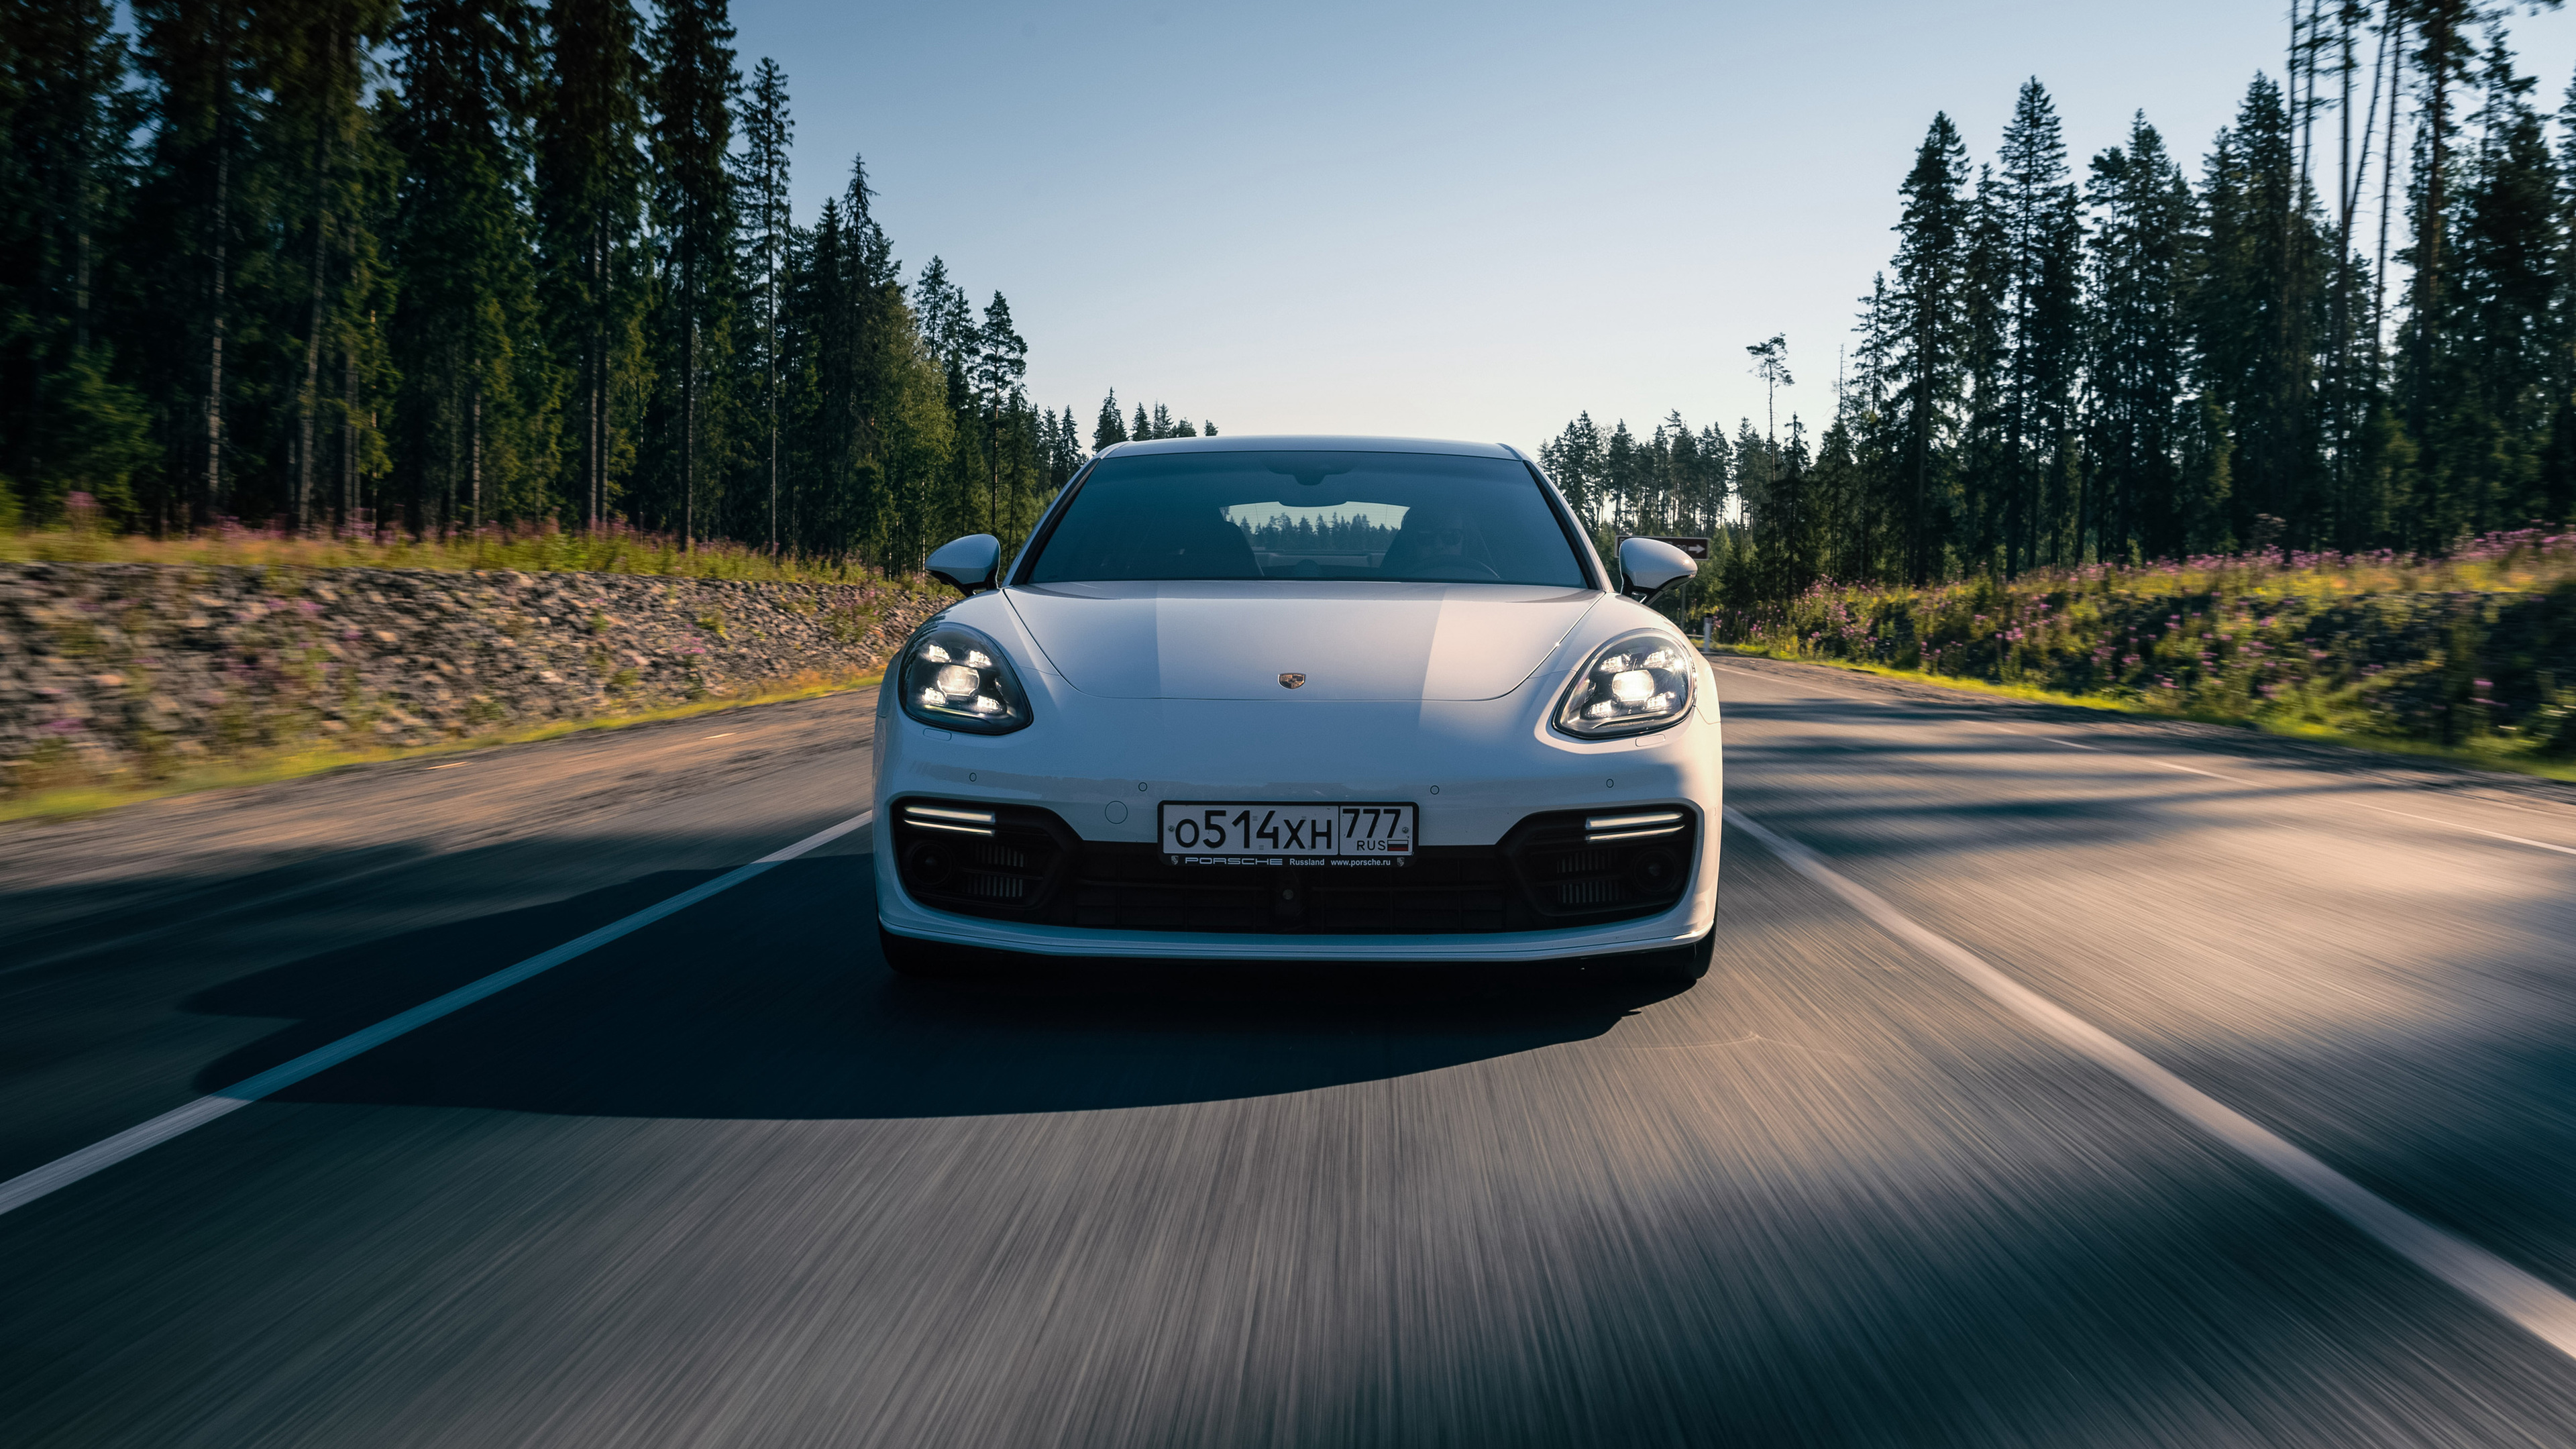 porsche panamera turbo s e hybrid sport turismo front 1539113715 - Porsche Panamera Turbo S E Hybrid Sport Turismo Front - porsche wallpapers, porsche panamera wallpapers, cars wallpapers, 4k-wallpapers, 2018 cars wallpapers